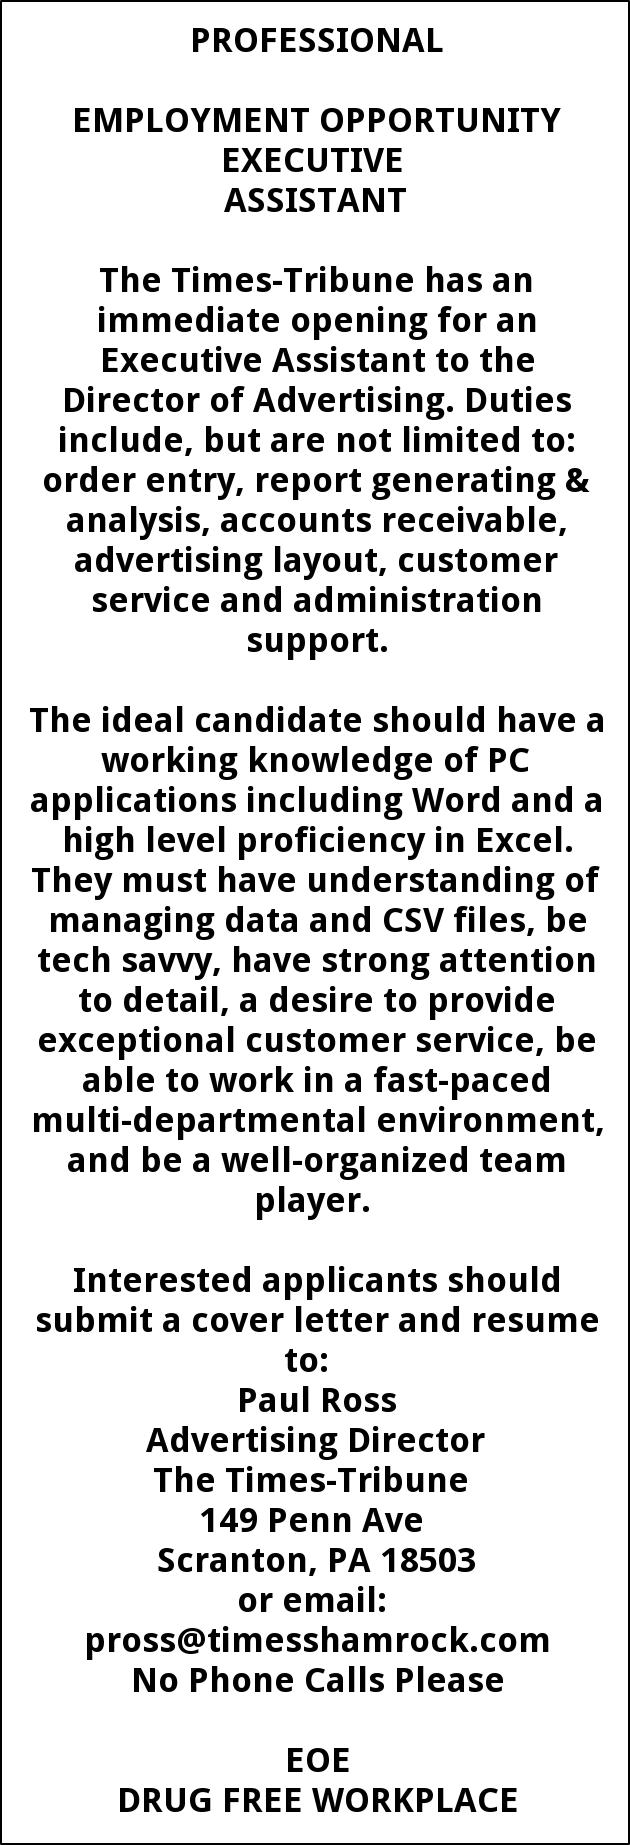 EXECUTIVE ASSISTANT